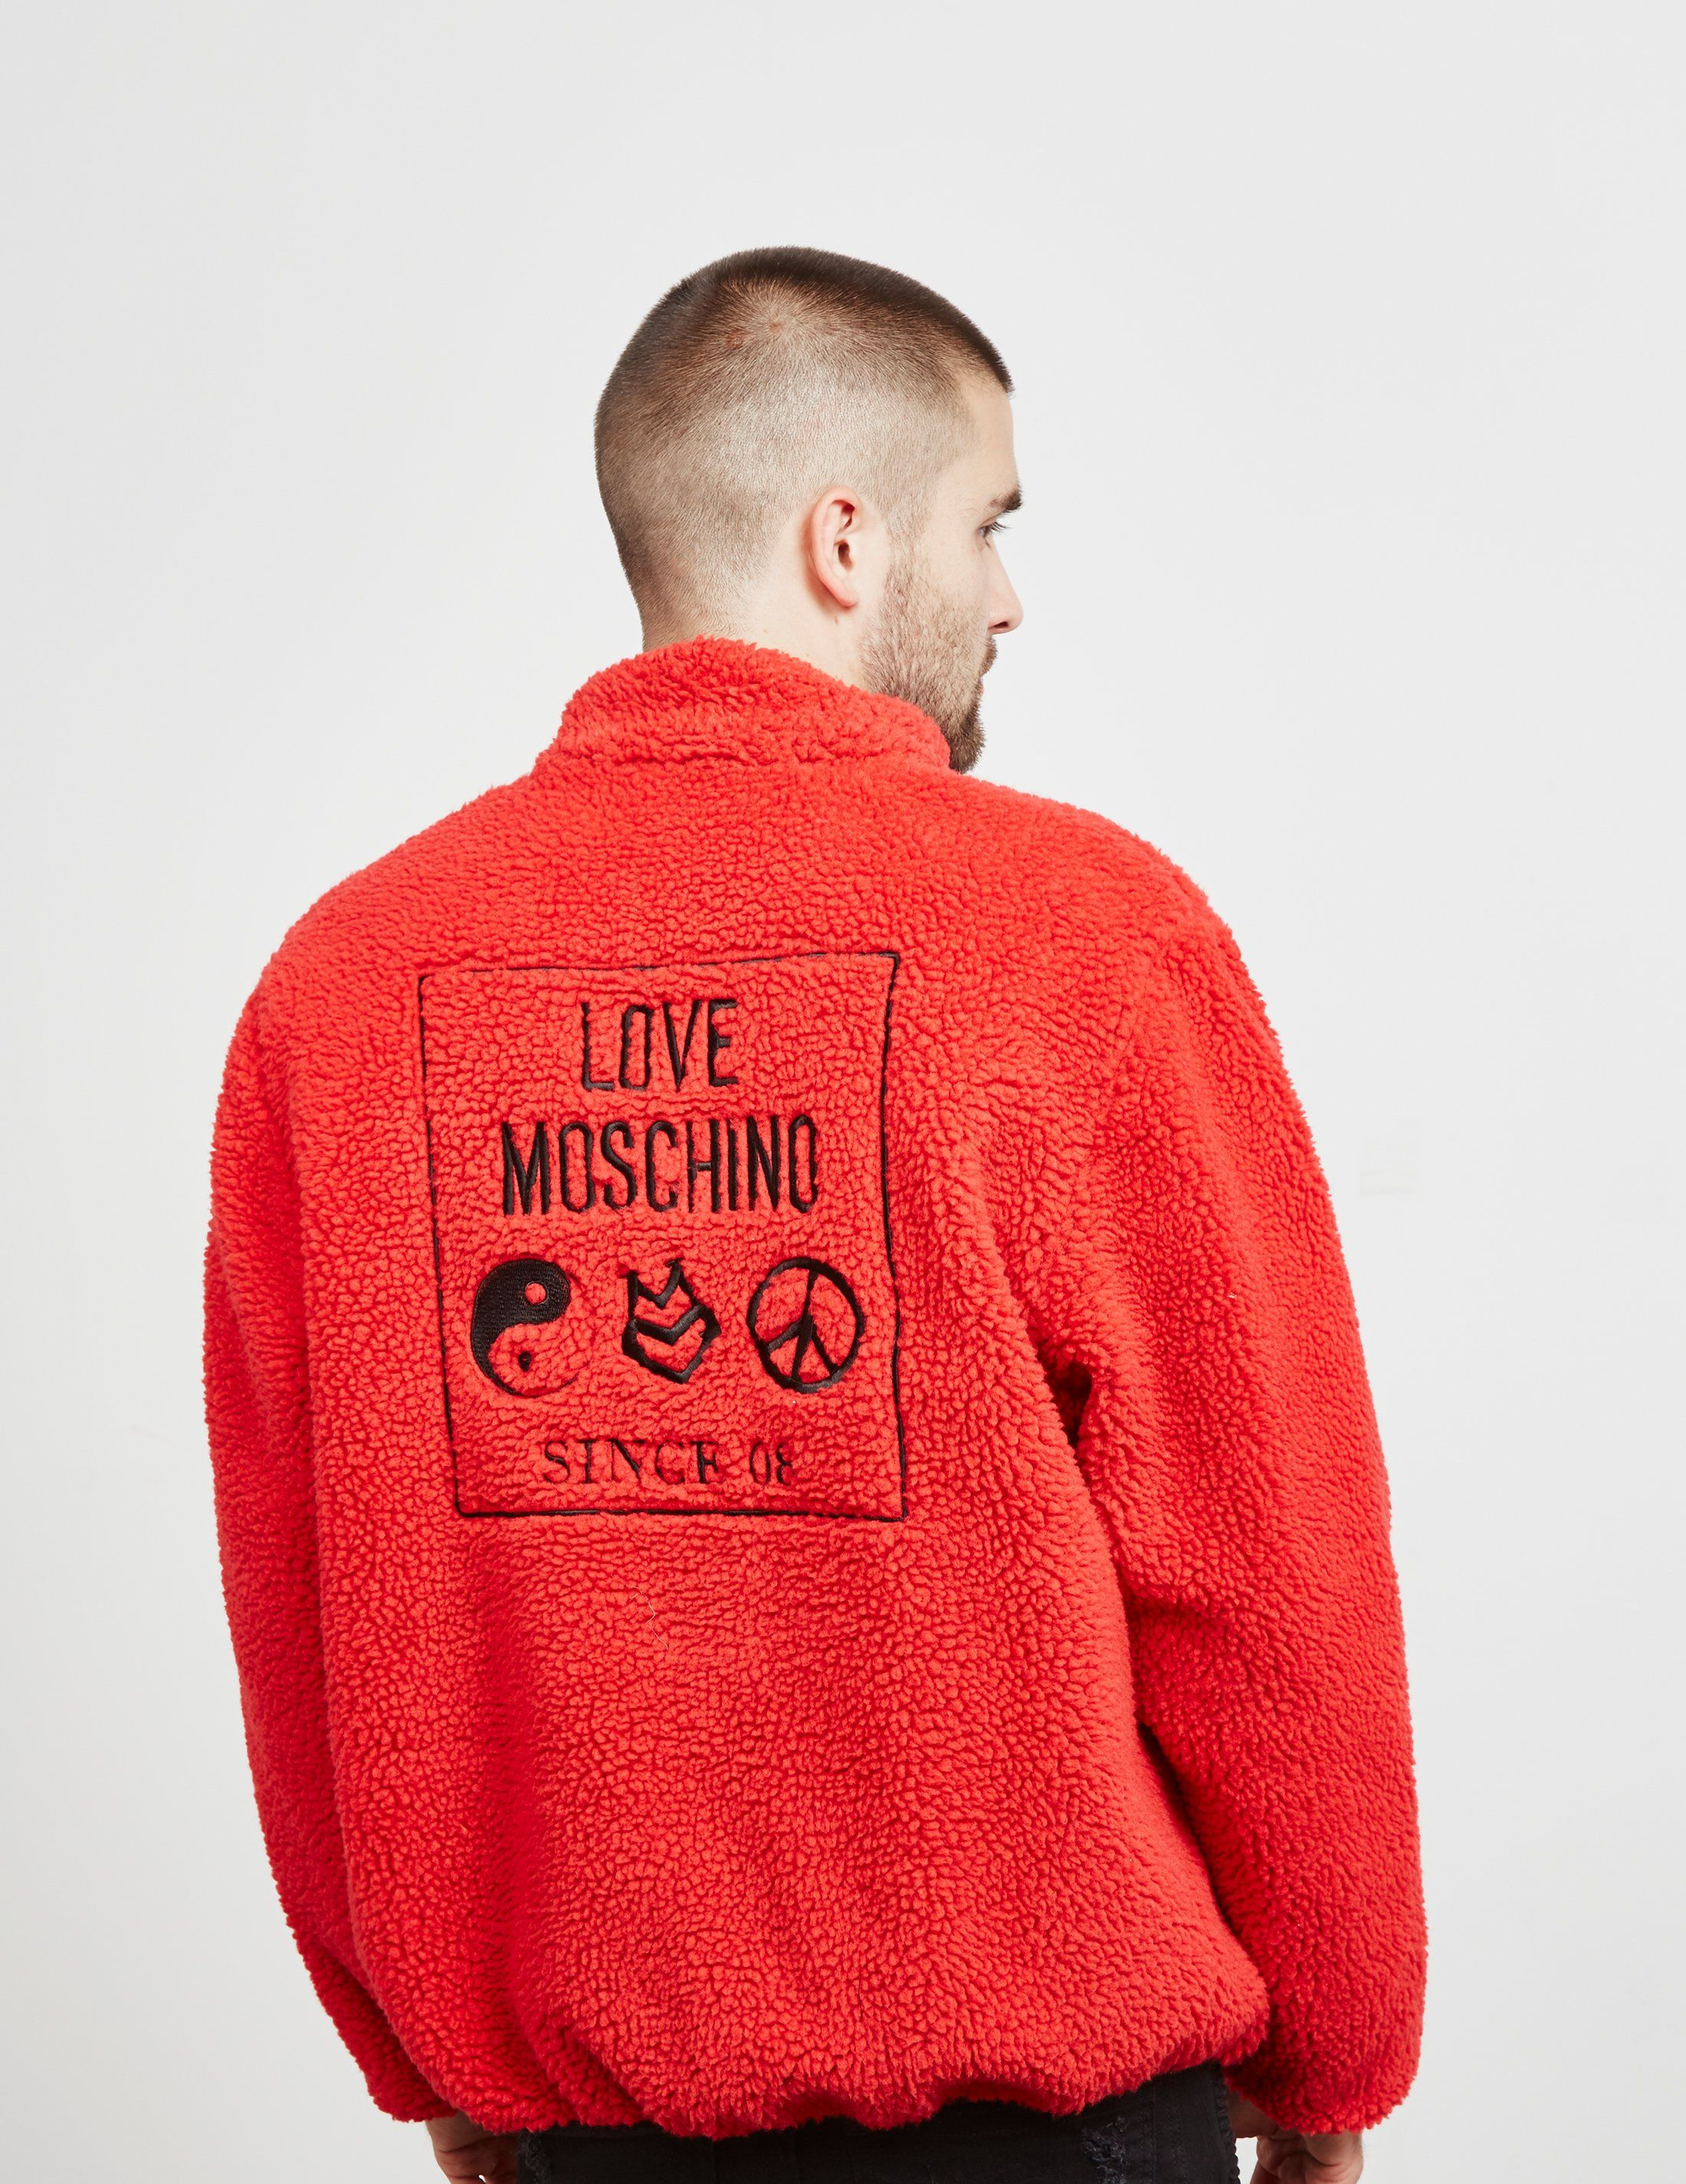 Love Moschino Reverse Symbols Jacket - Online Exclusive